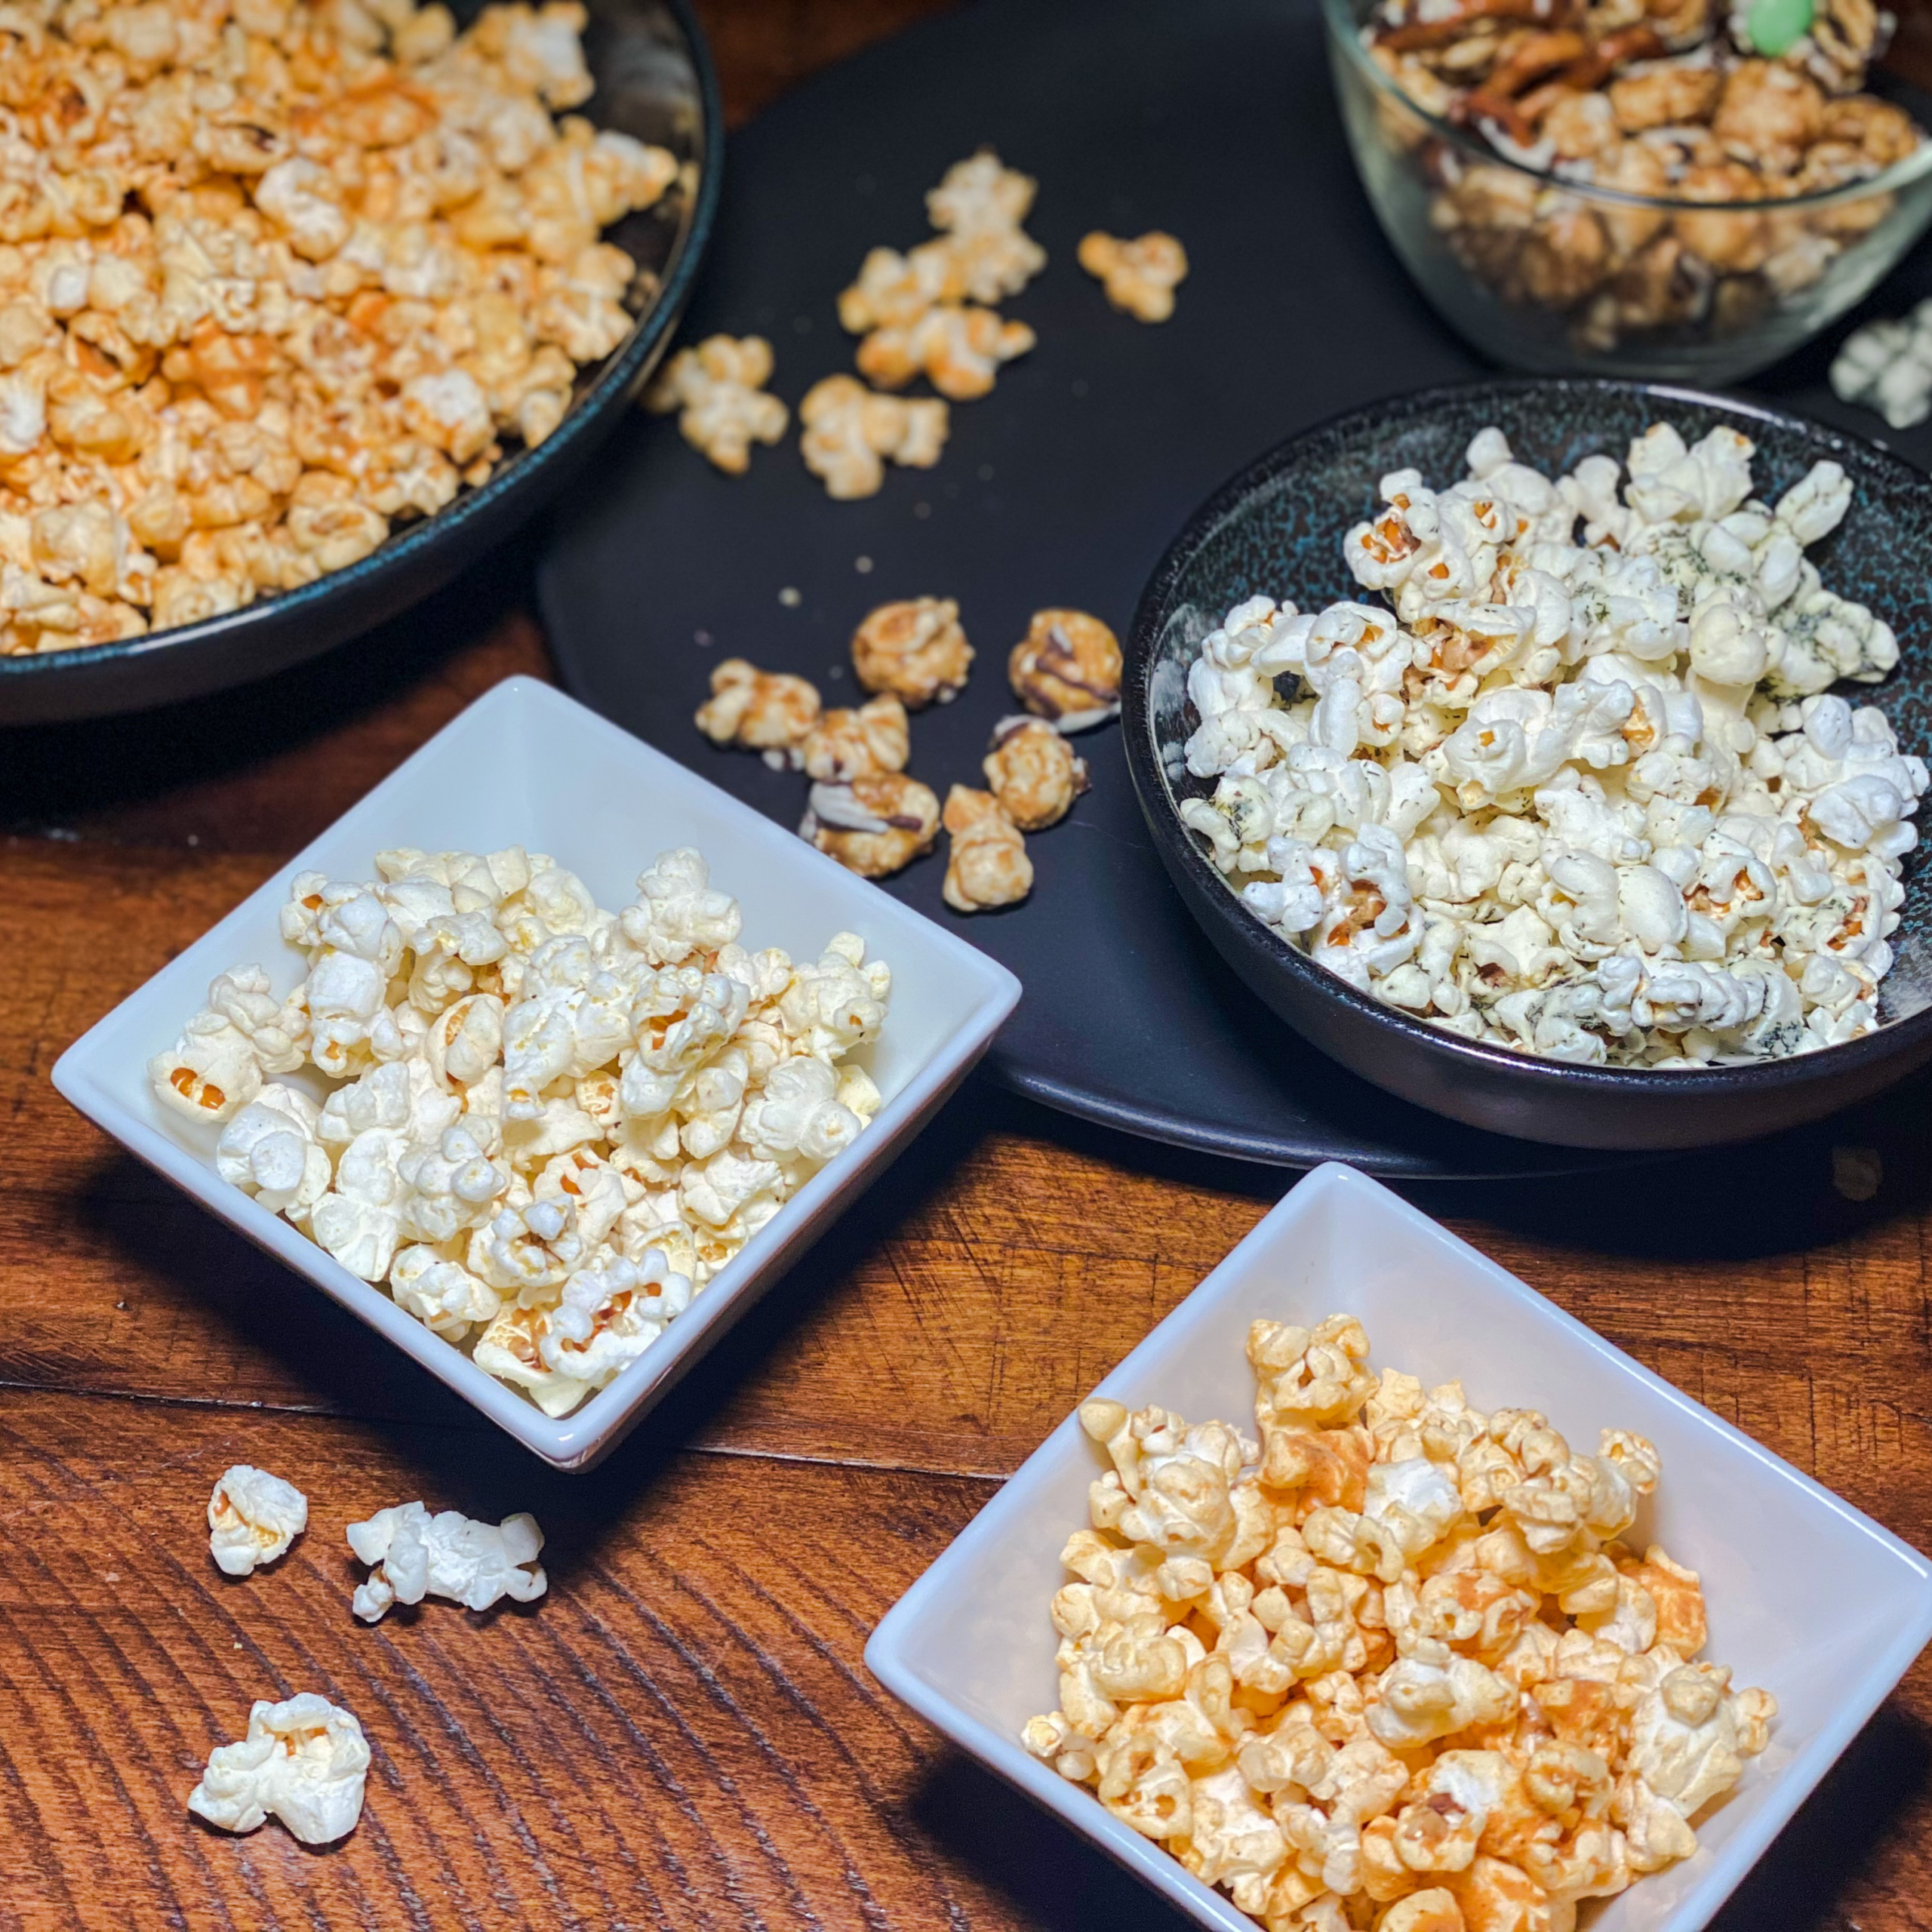 Find Out Which Cocktail Pairs Well With Gourmet Popcorn